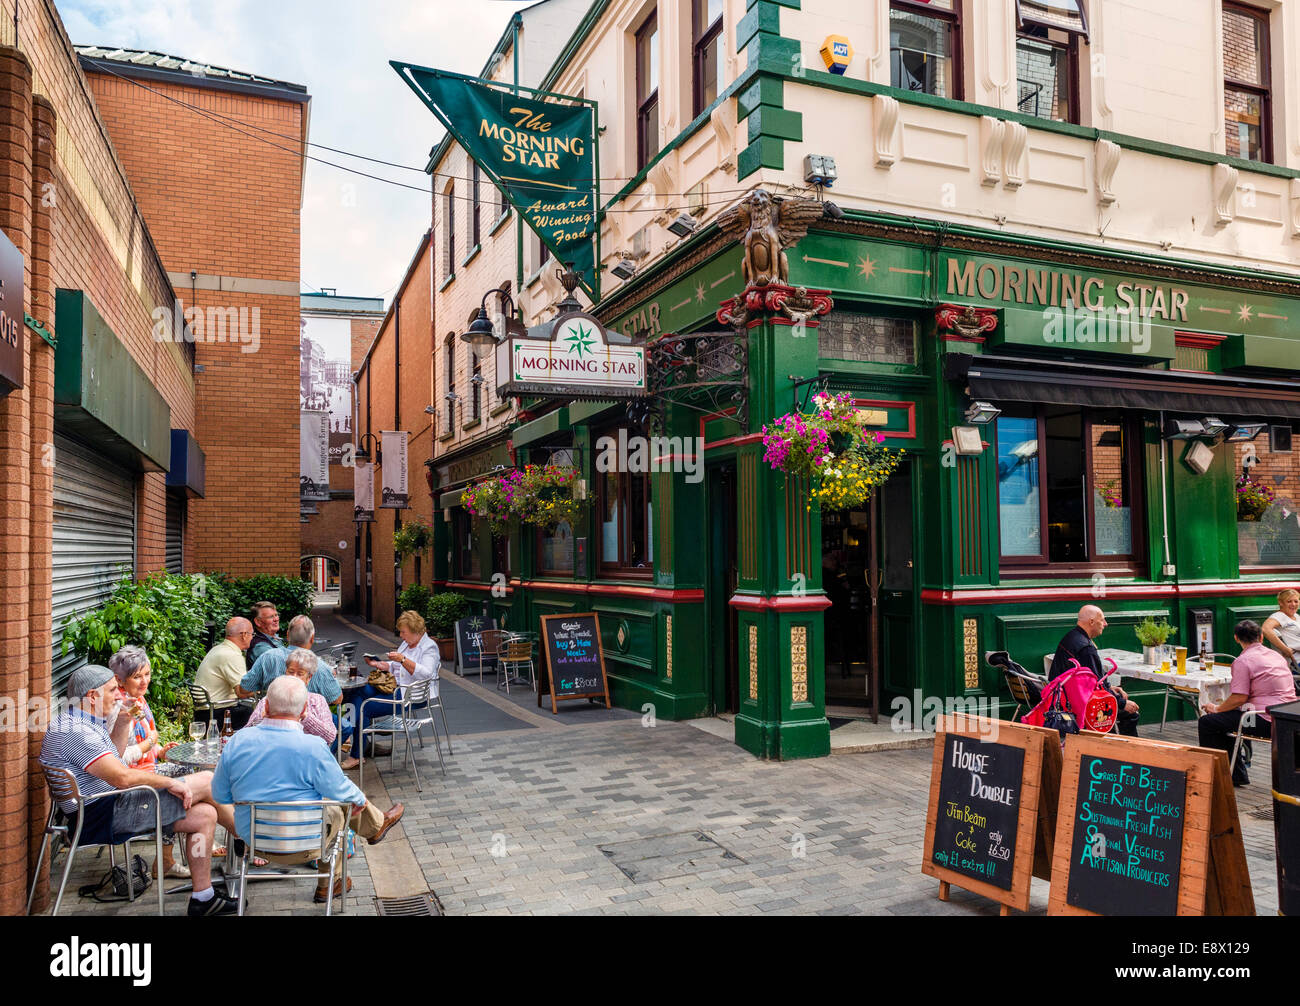 Morning Star pub on Pottinger's Entry, one of  historic narrow passageways between High St and Ann St, Belfast, - Stock Image